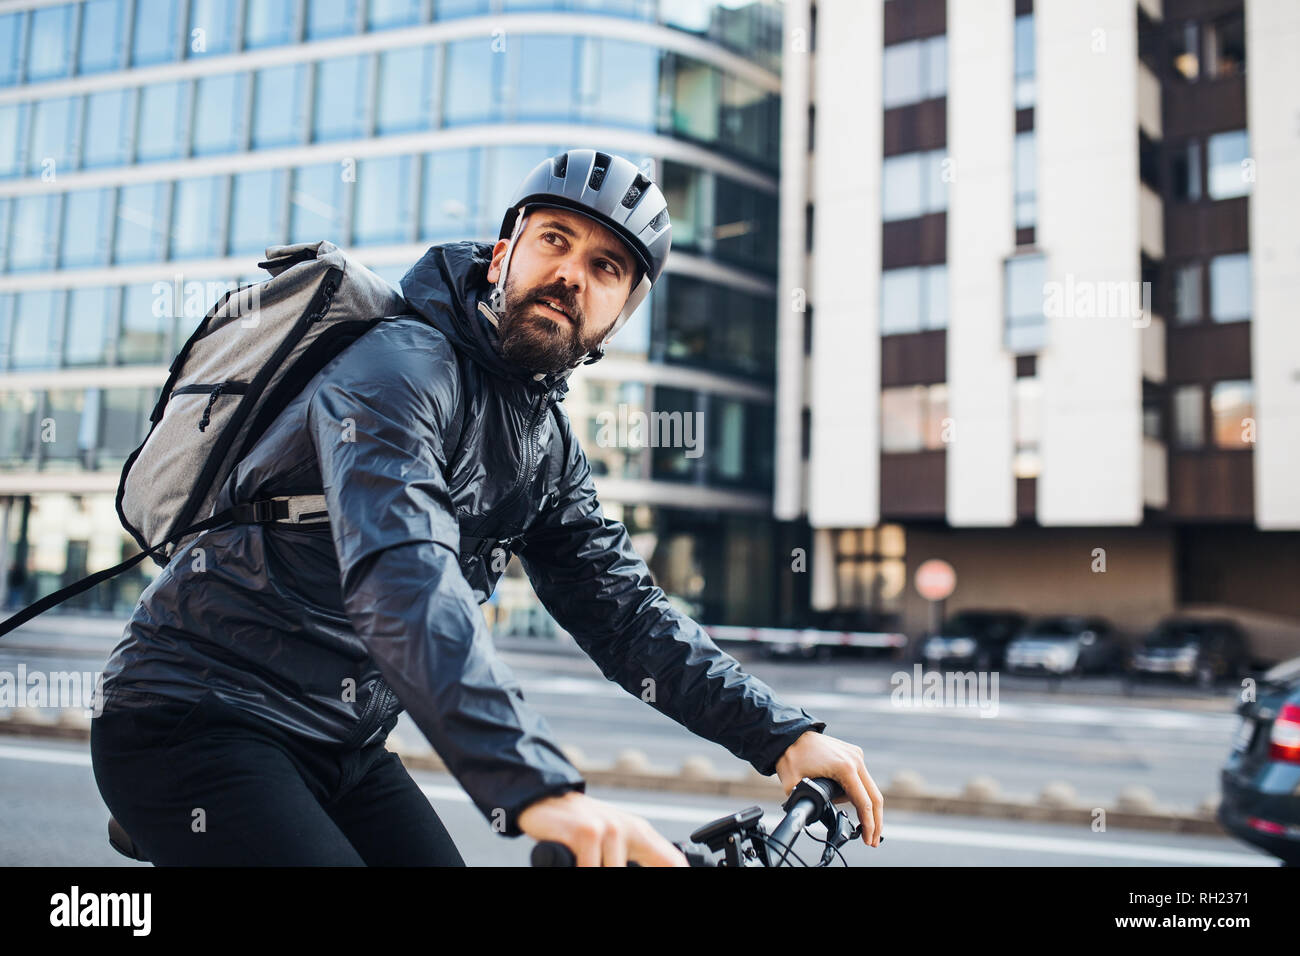 Male hipster courier with bicycle cycling on a road in city, delivering packages. Copy space. Stock Photo